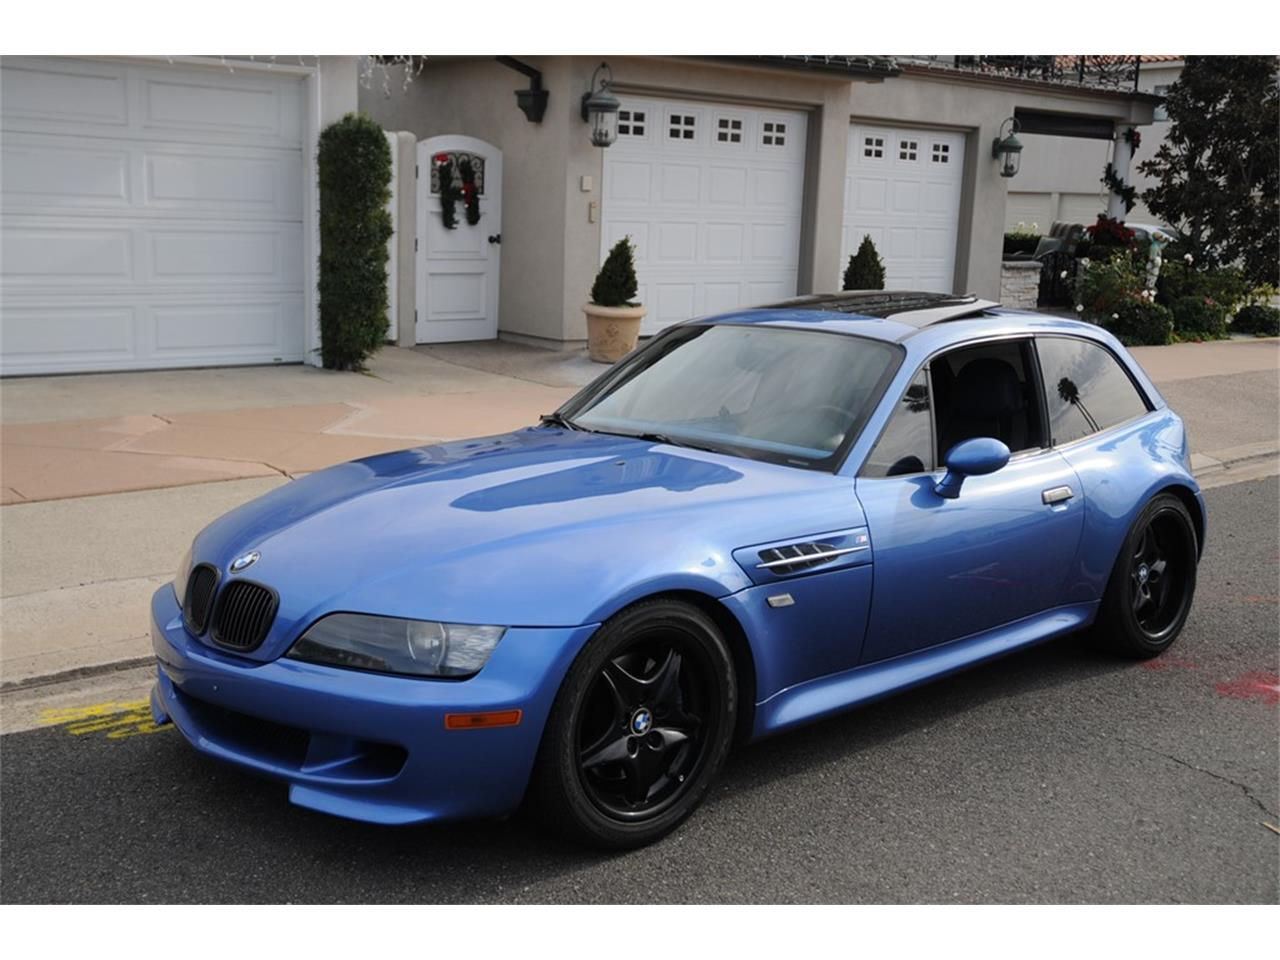 Large Picture of '00 BMW M Coupe - $17,990.00 Offered by Star European Inc. - P65V